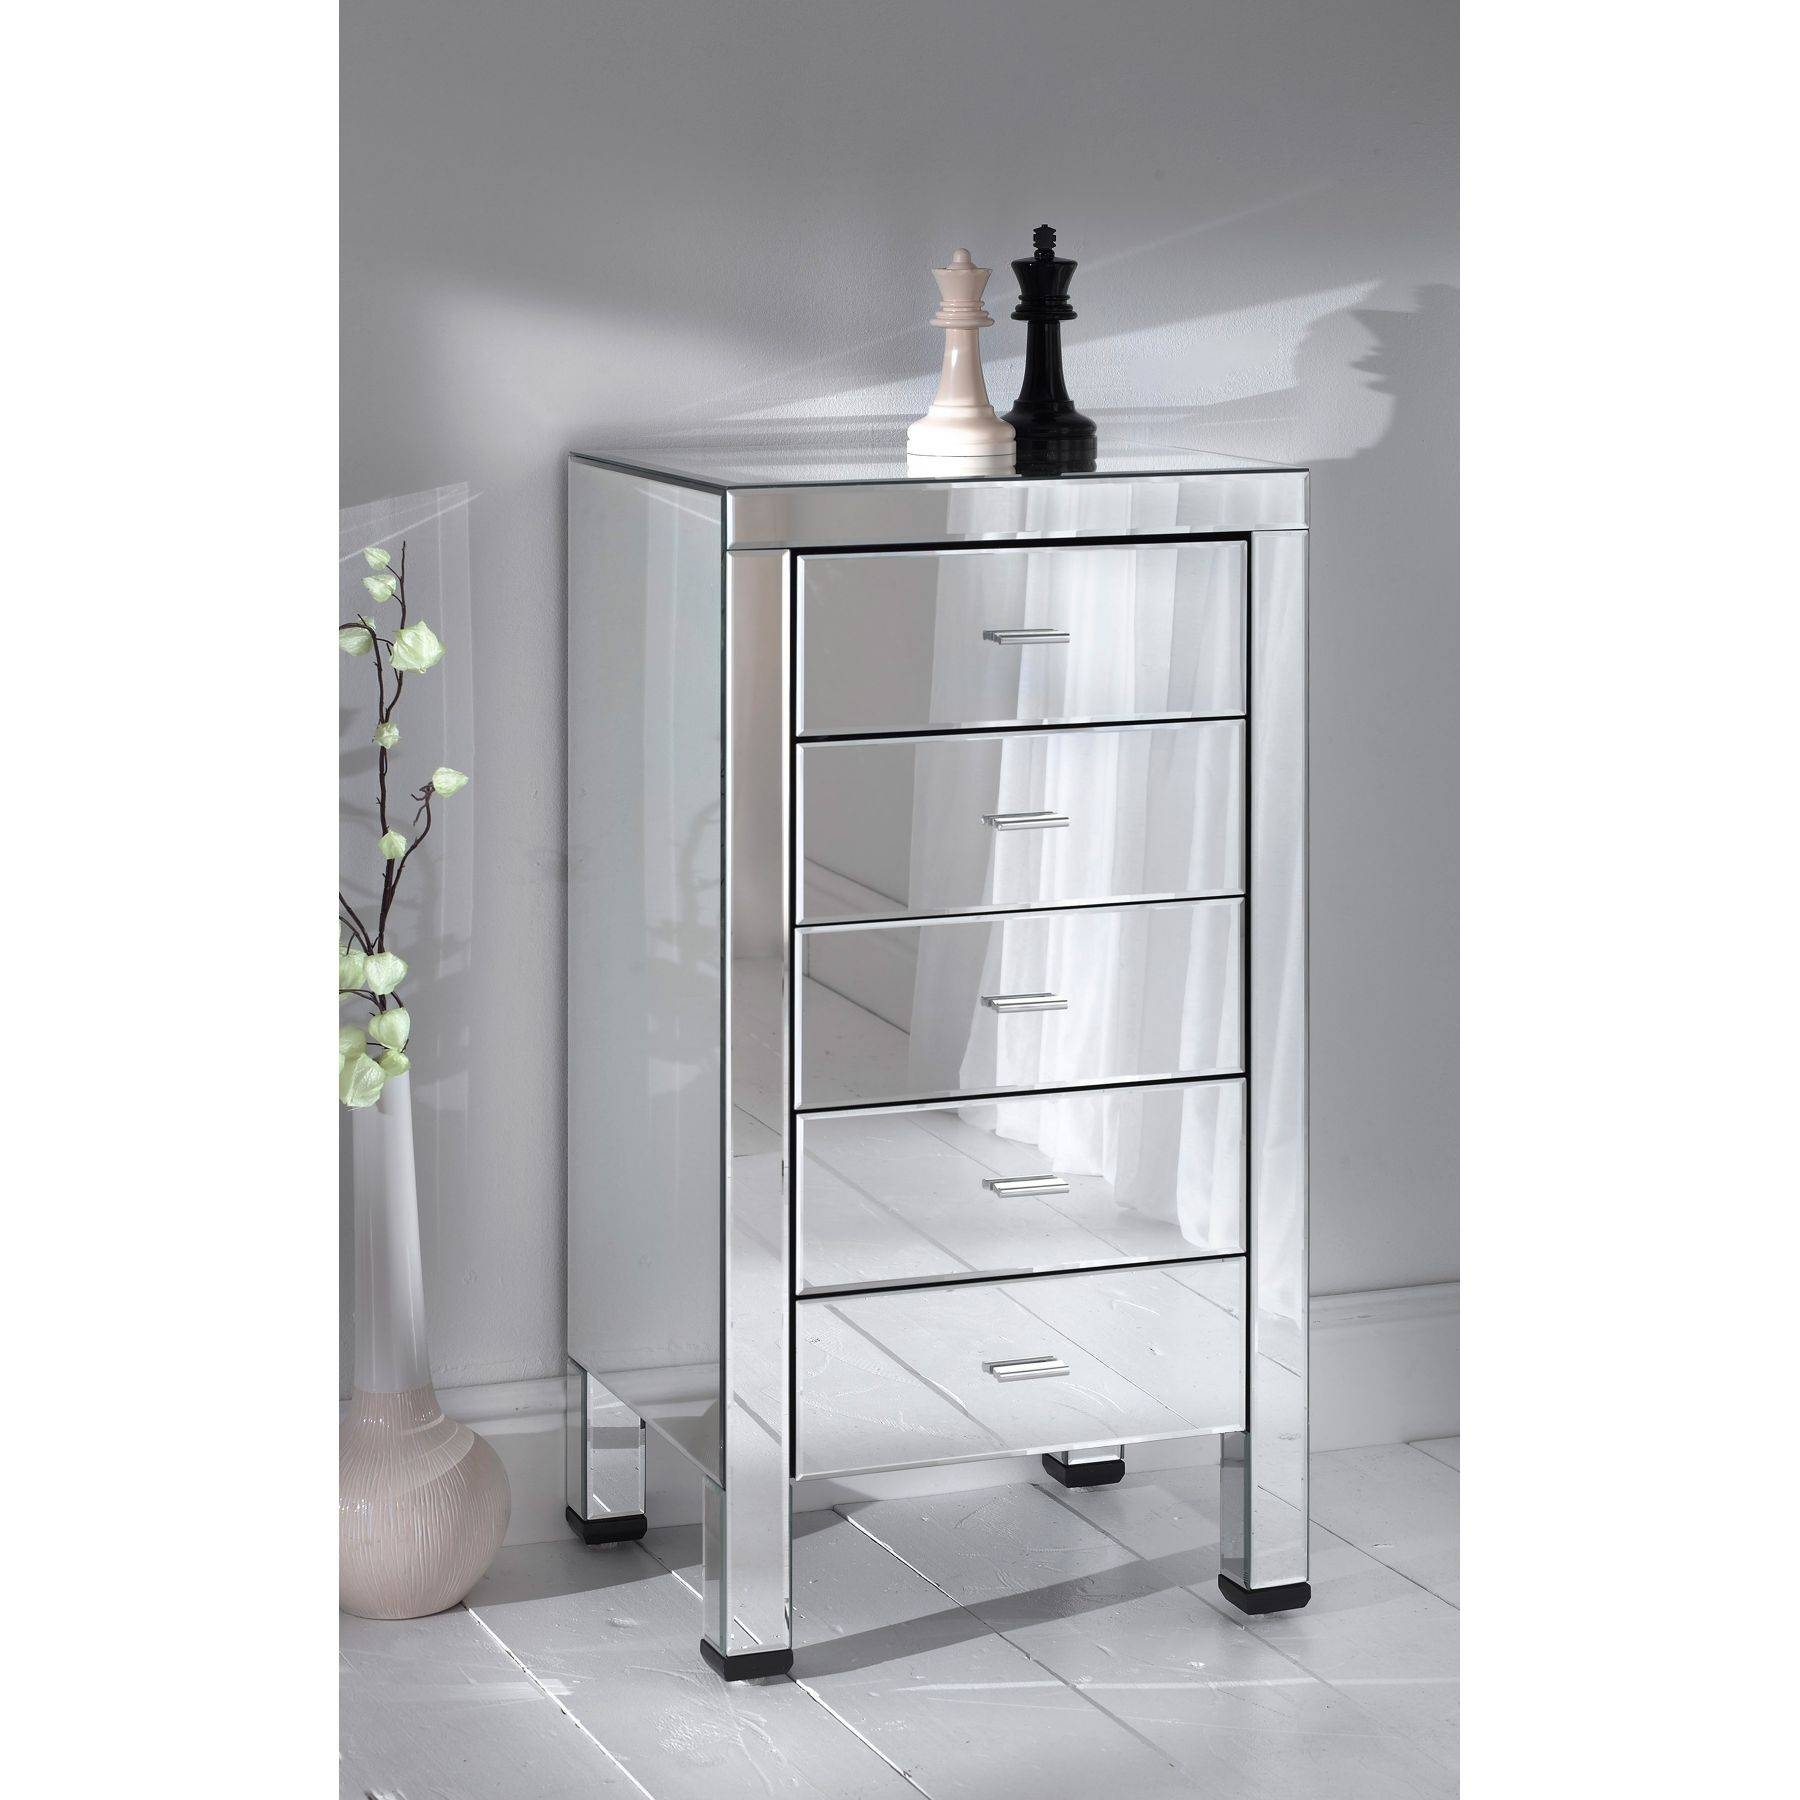 Furniture: 3 Drawers Mirrored Chest Of Drawers For Bedroom with regard to Cheap Wardrobes And Chest Of Drawers (Image 9 of 15)